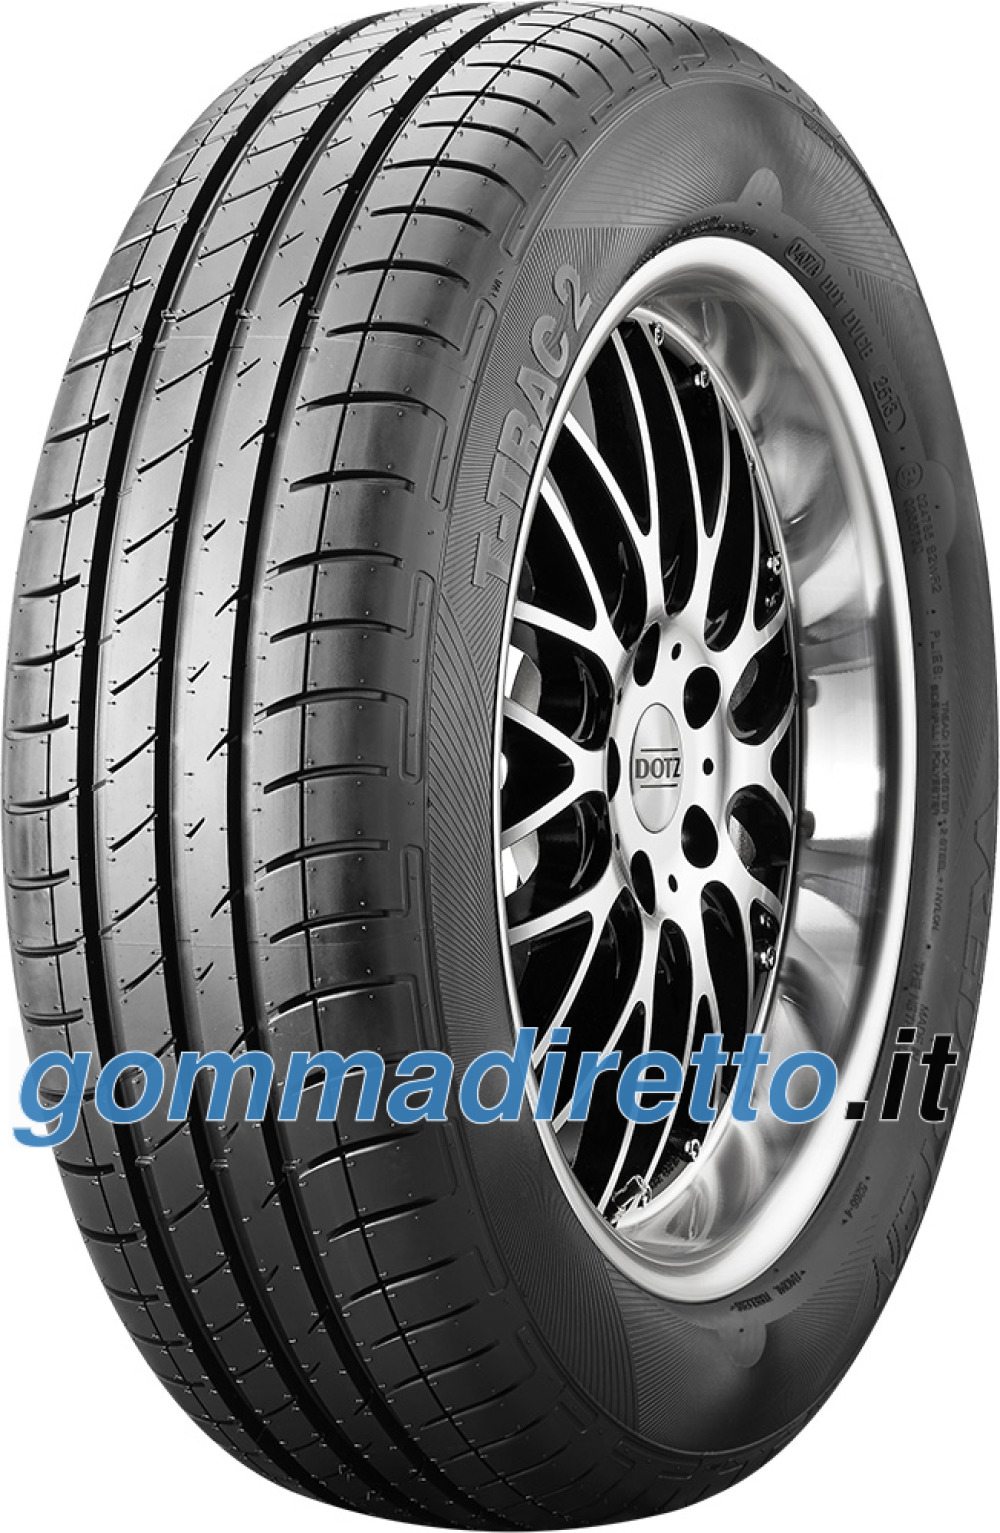 Image of Vredestein T-Trac 2 ( 165/70 R13 79T )